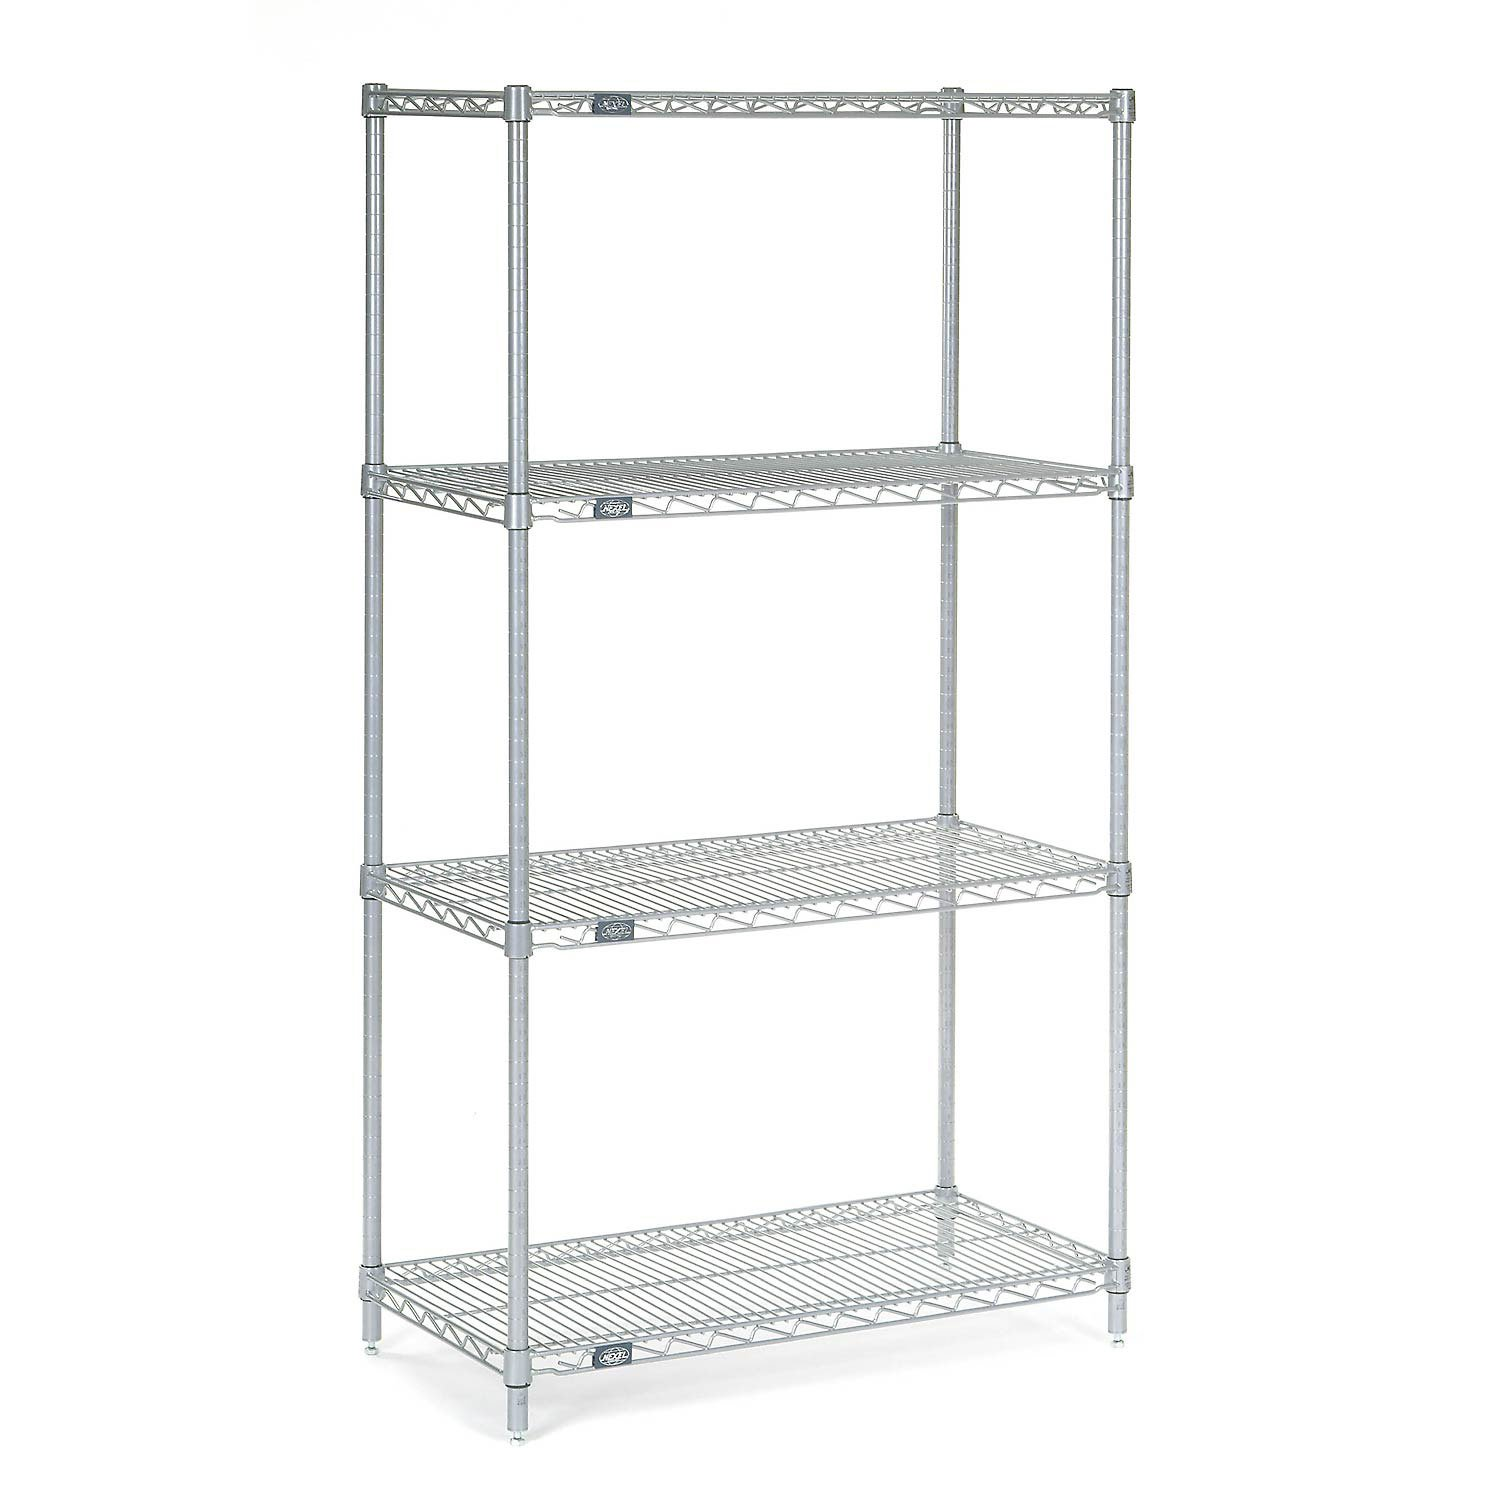 Chrome Wire Shelving, 30''W X 14''D x 54''H by Global Industrial